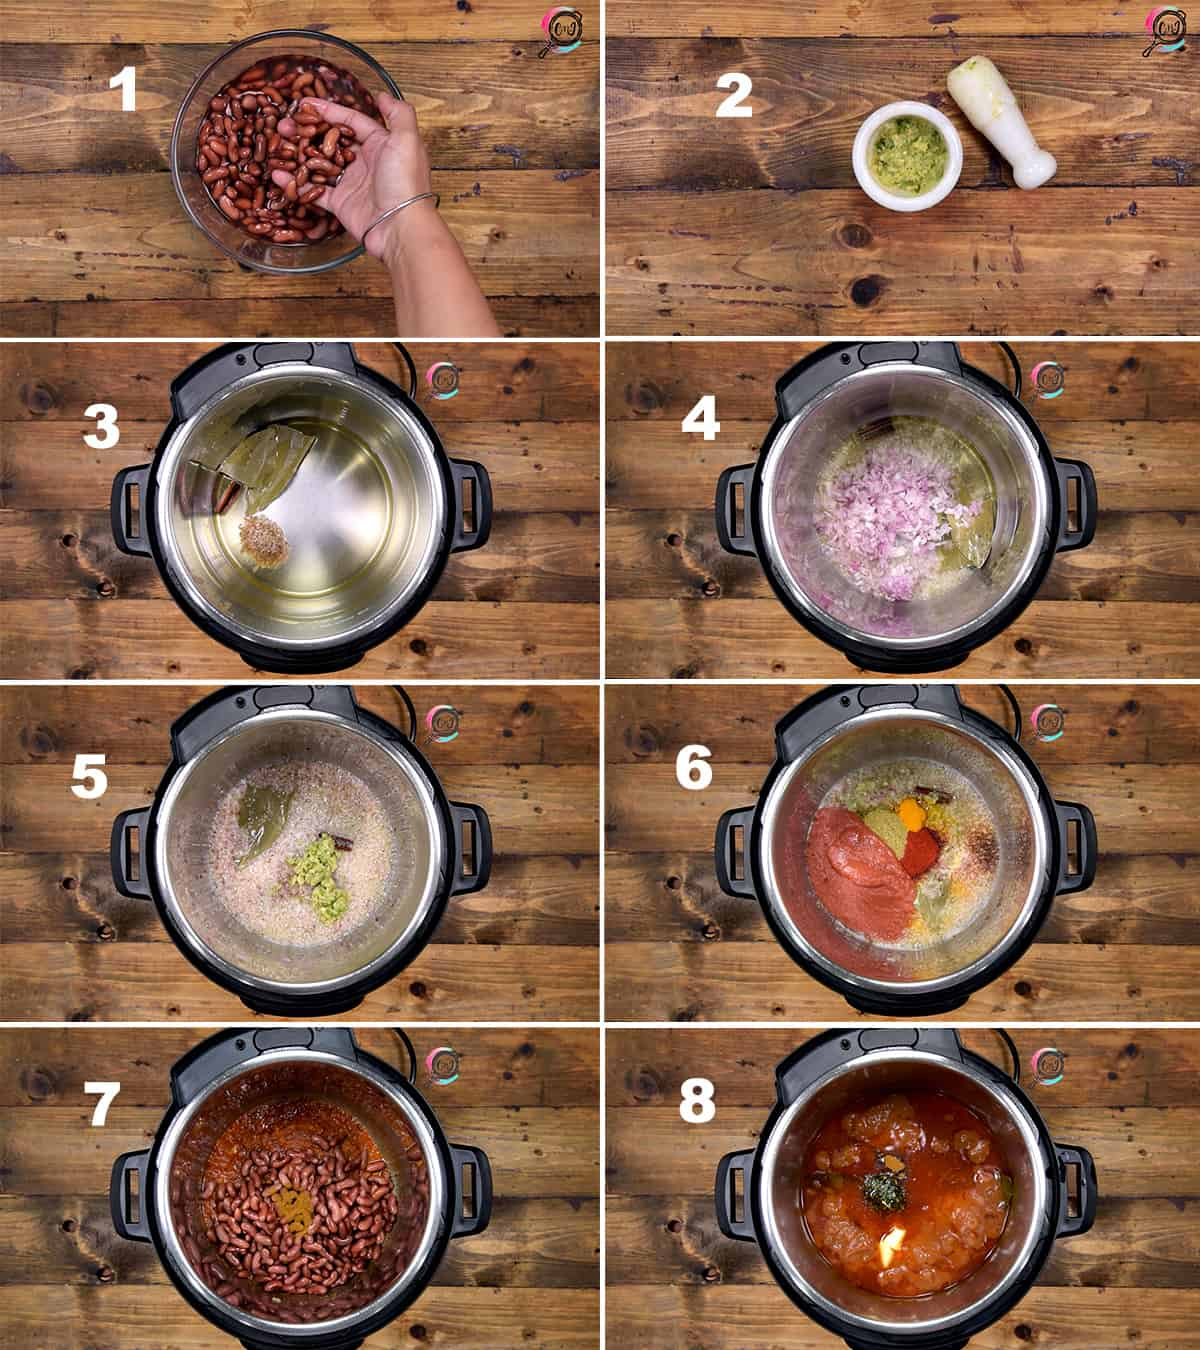 Step by Step picture collage showing how to make rajma in Instant Pot.